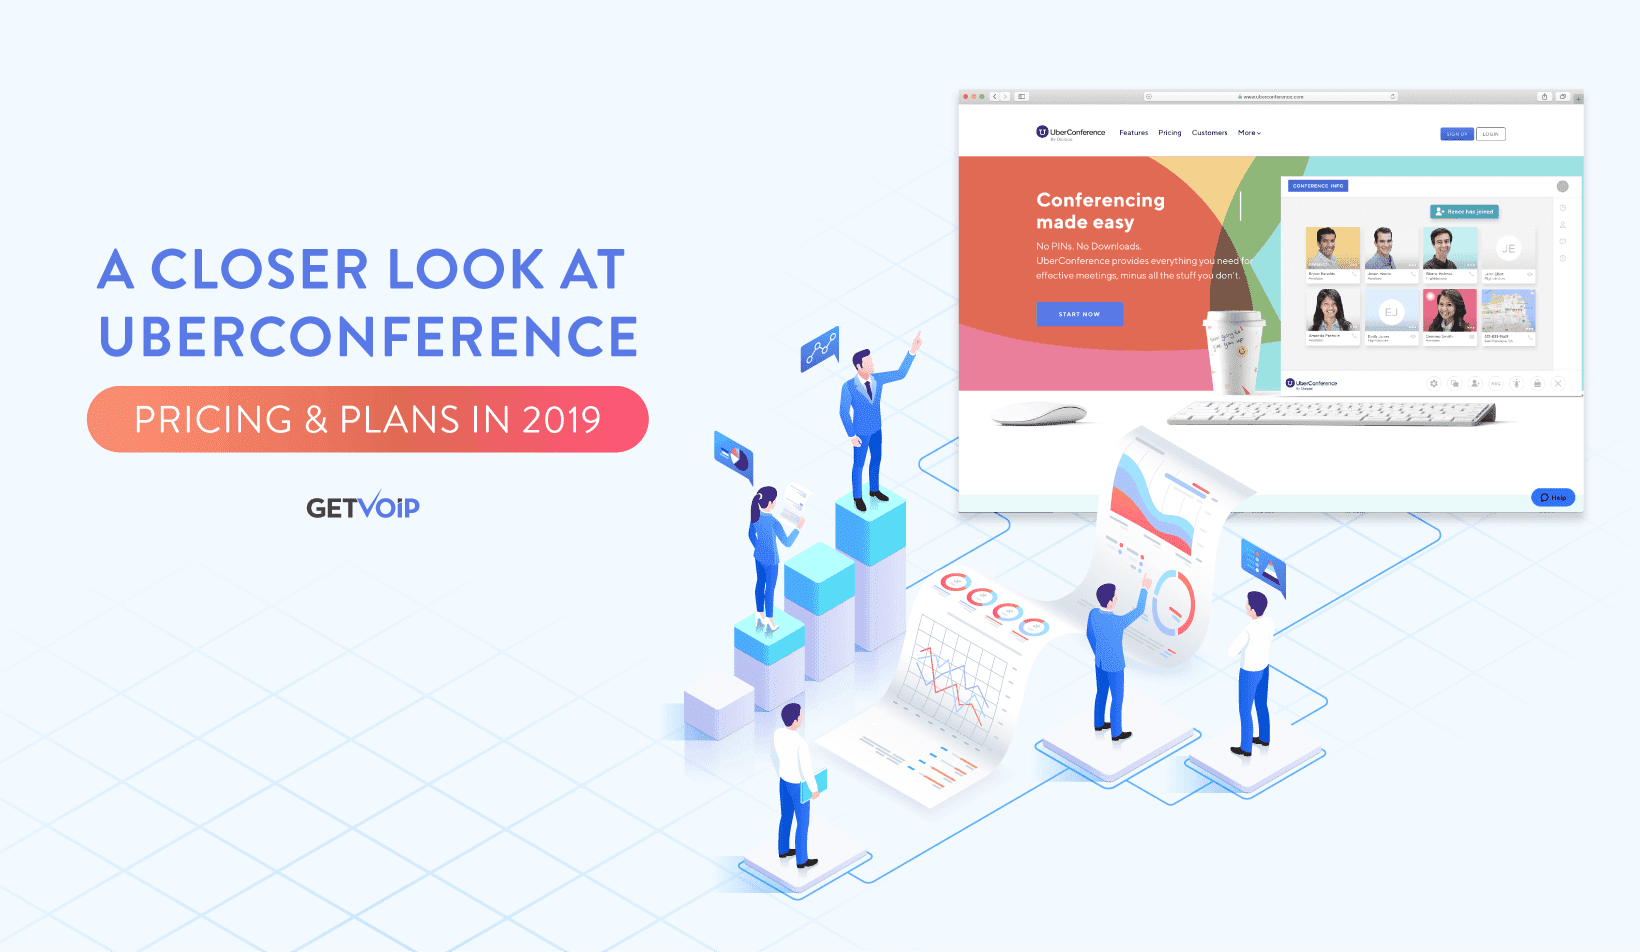 A Closer Look at UberConference Pricing & Plans in 2019